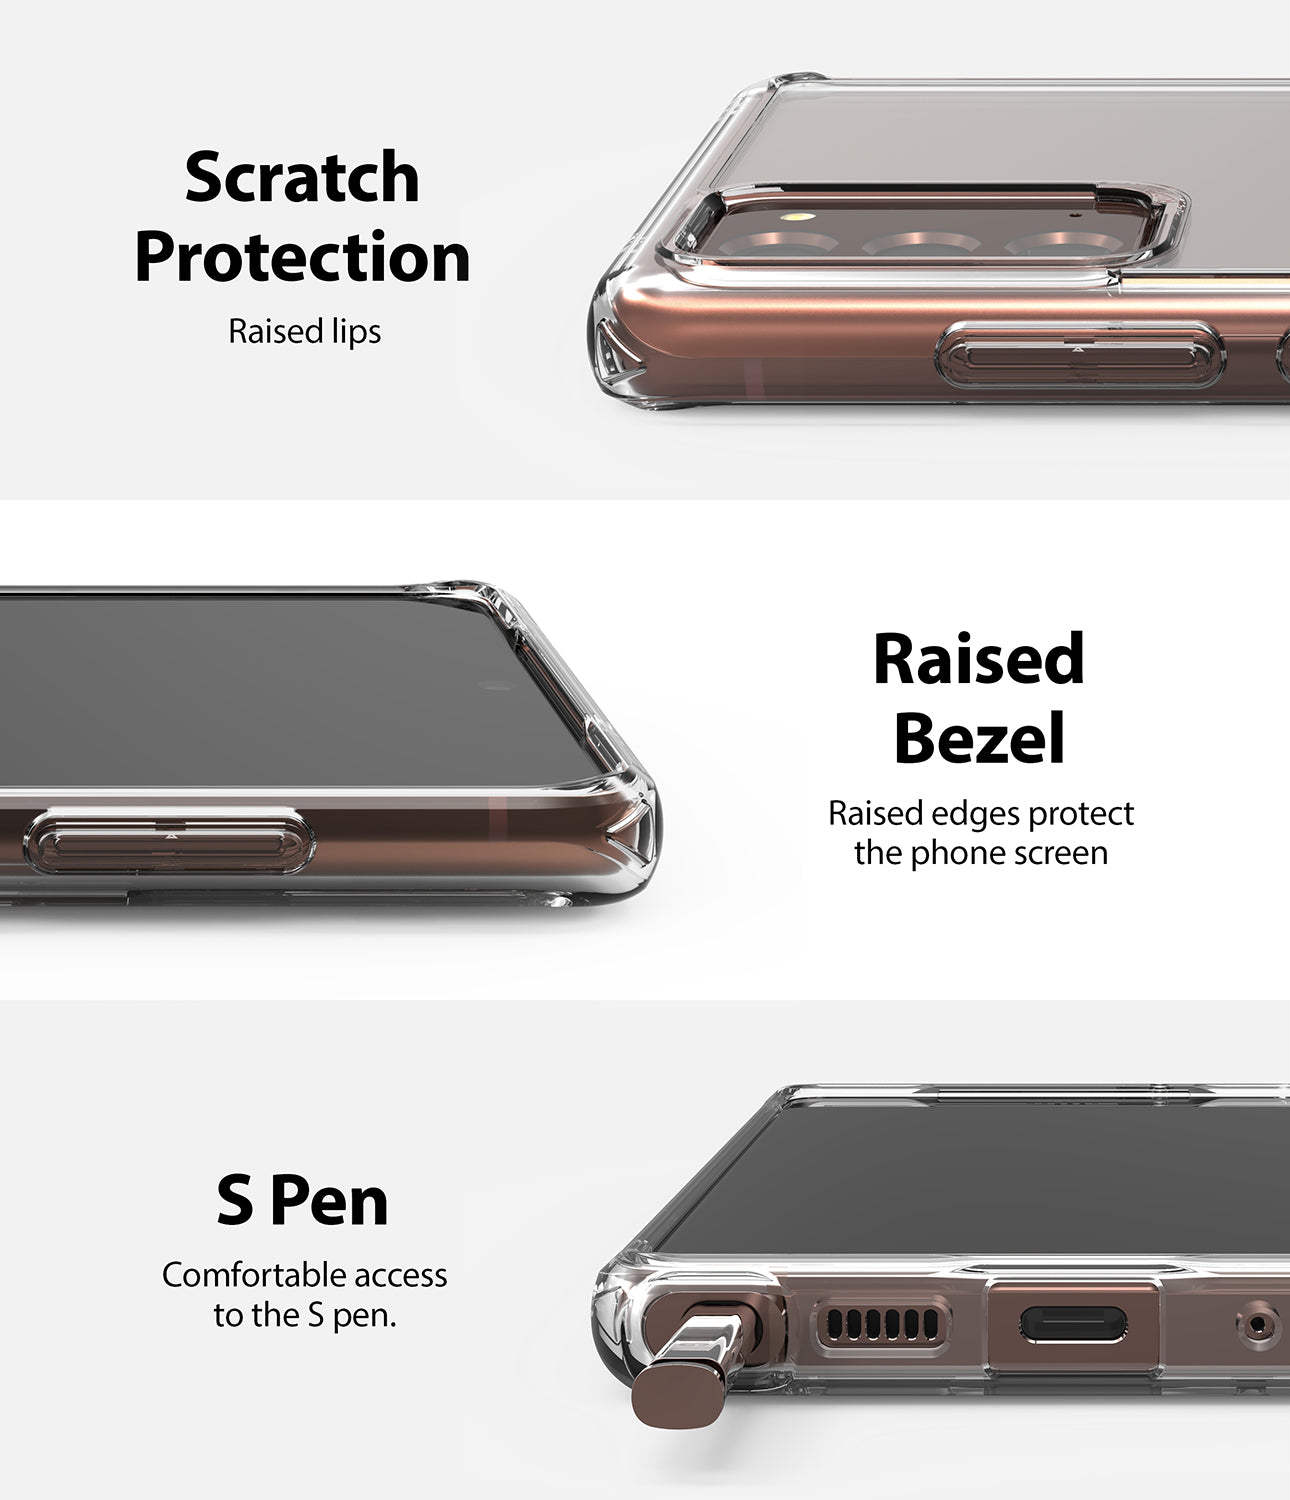 scratch protection with raised lips and bezel / comfortable access to the s pen